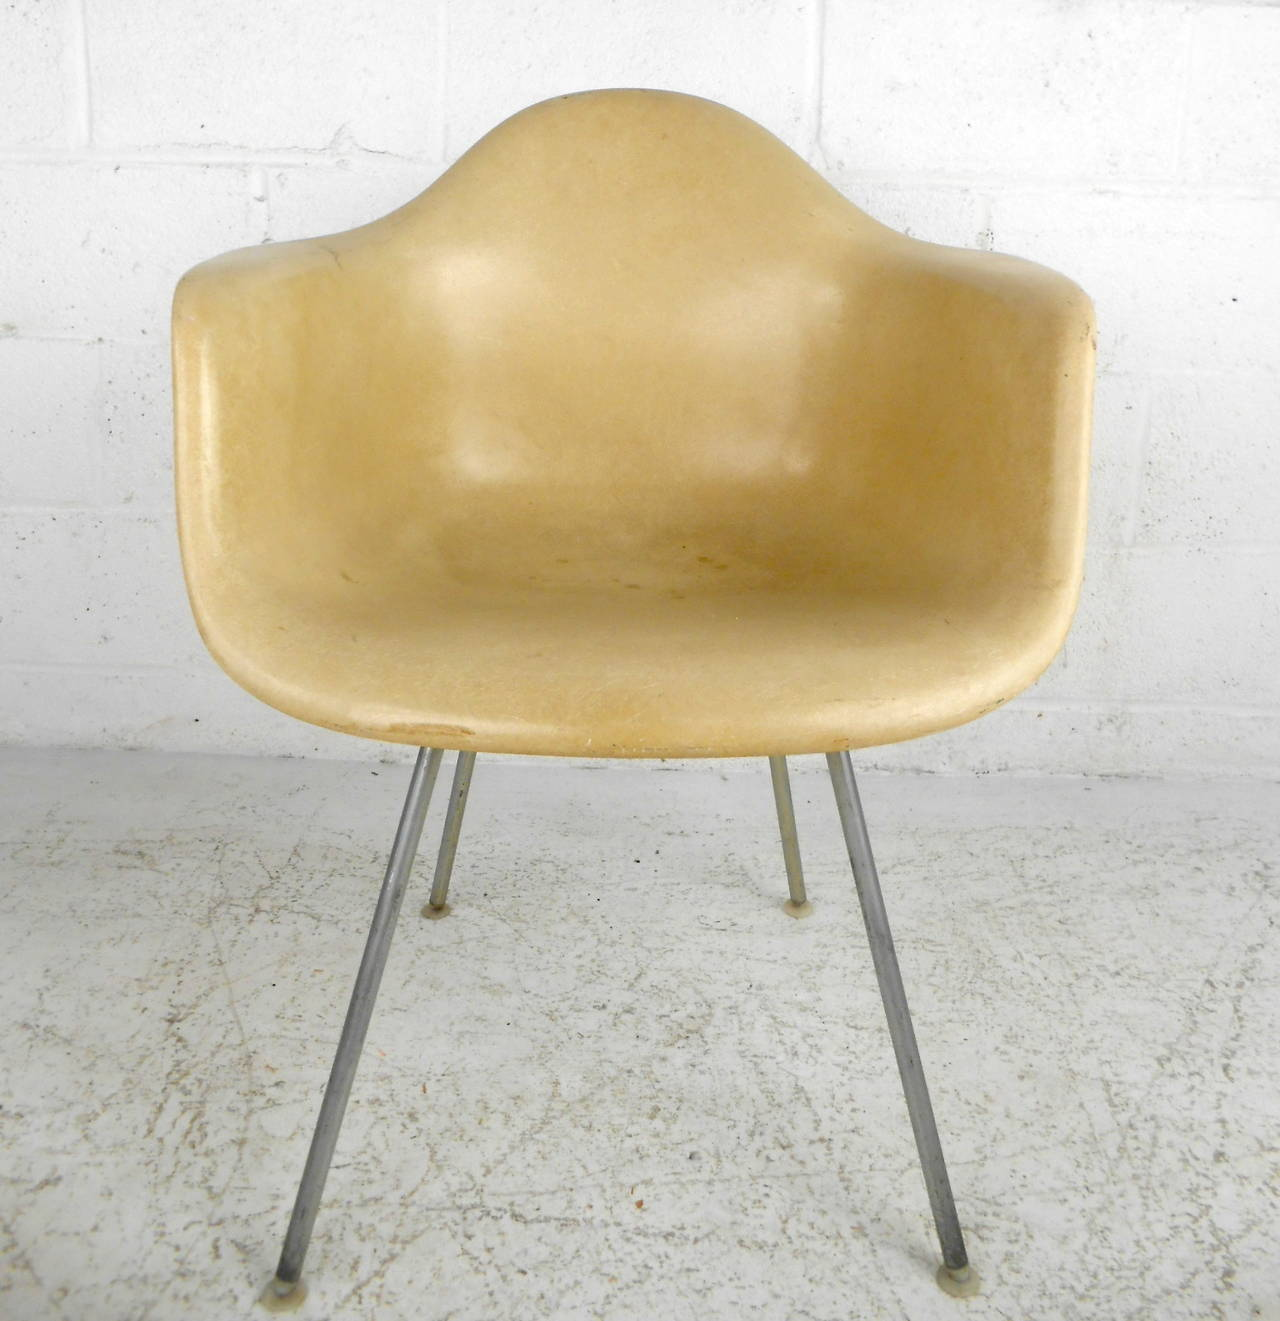 mid century modern fiberglass shell chair by eames for herman miller at 1stdibs. Black Bedroom Furniture Sets. Home Design Ideas